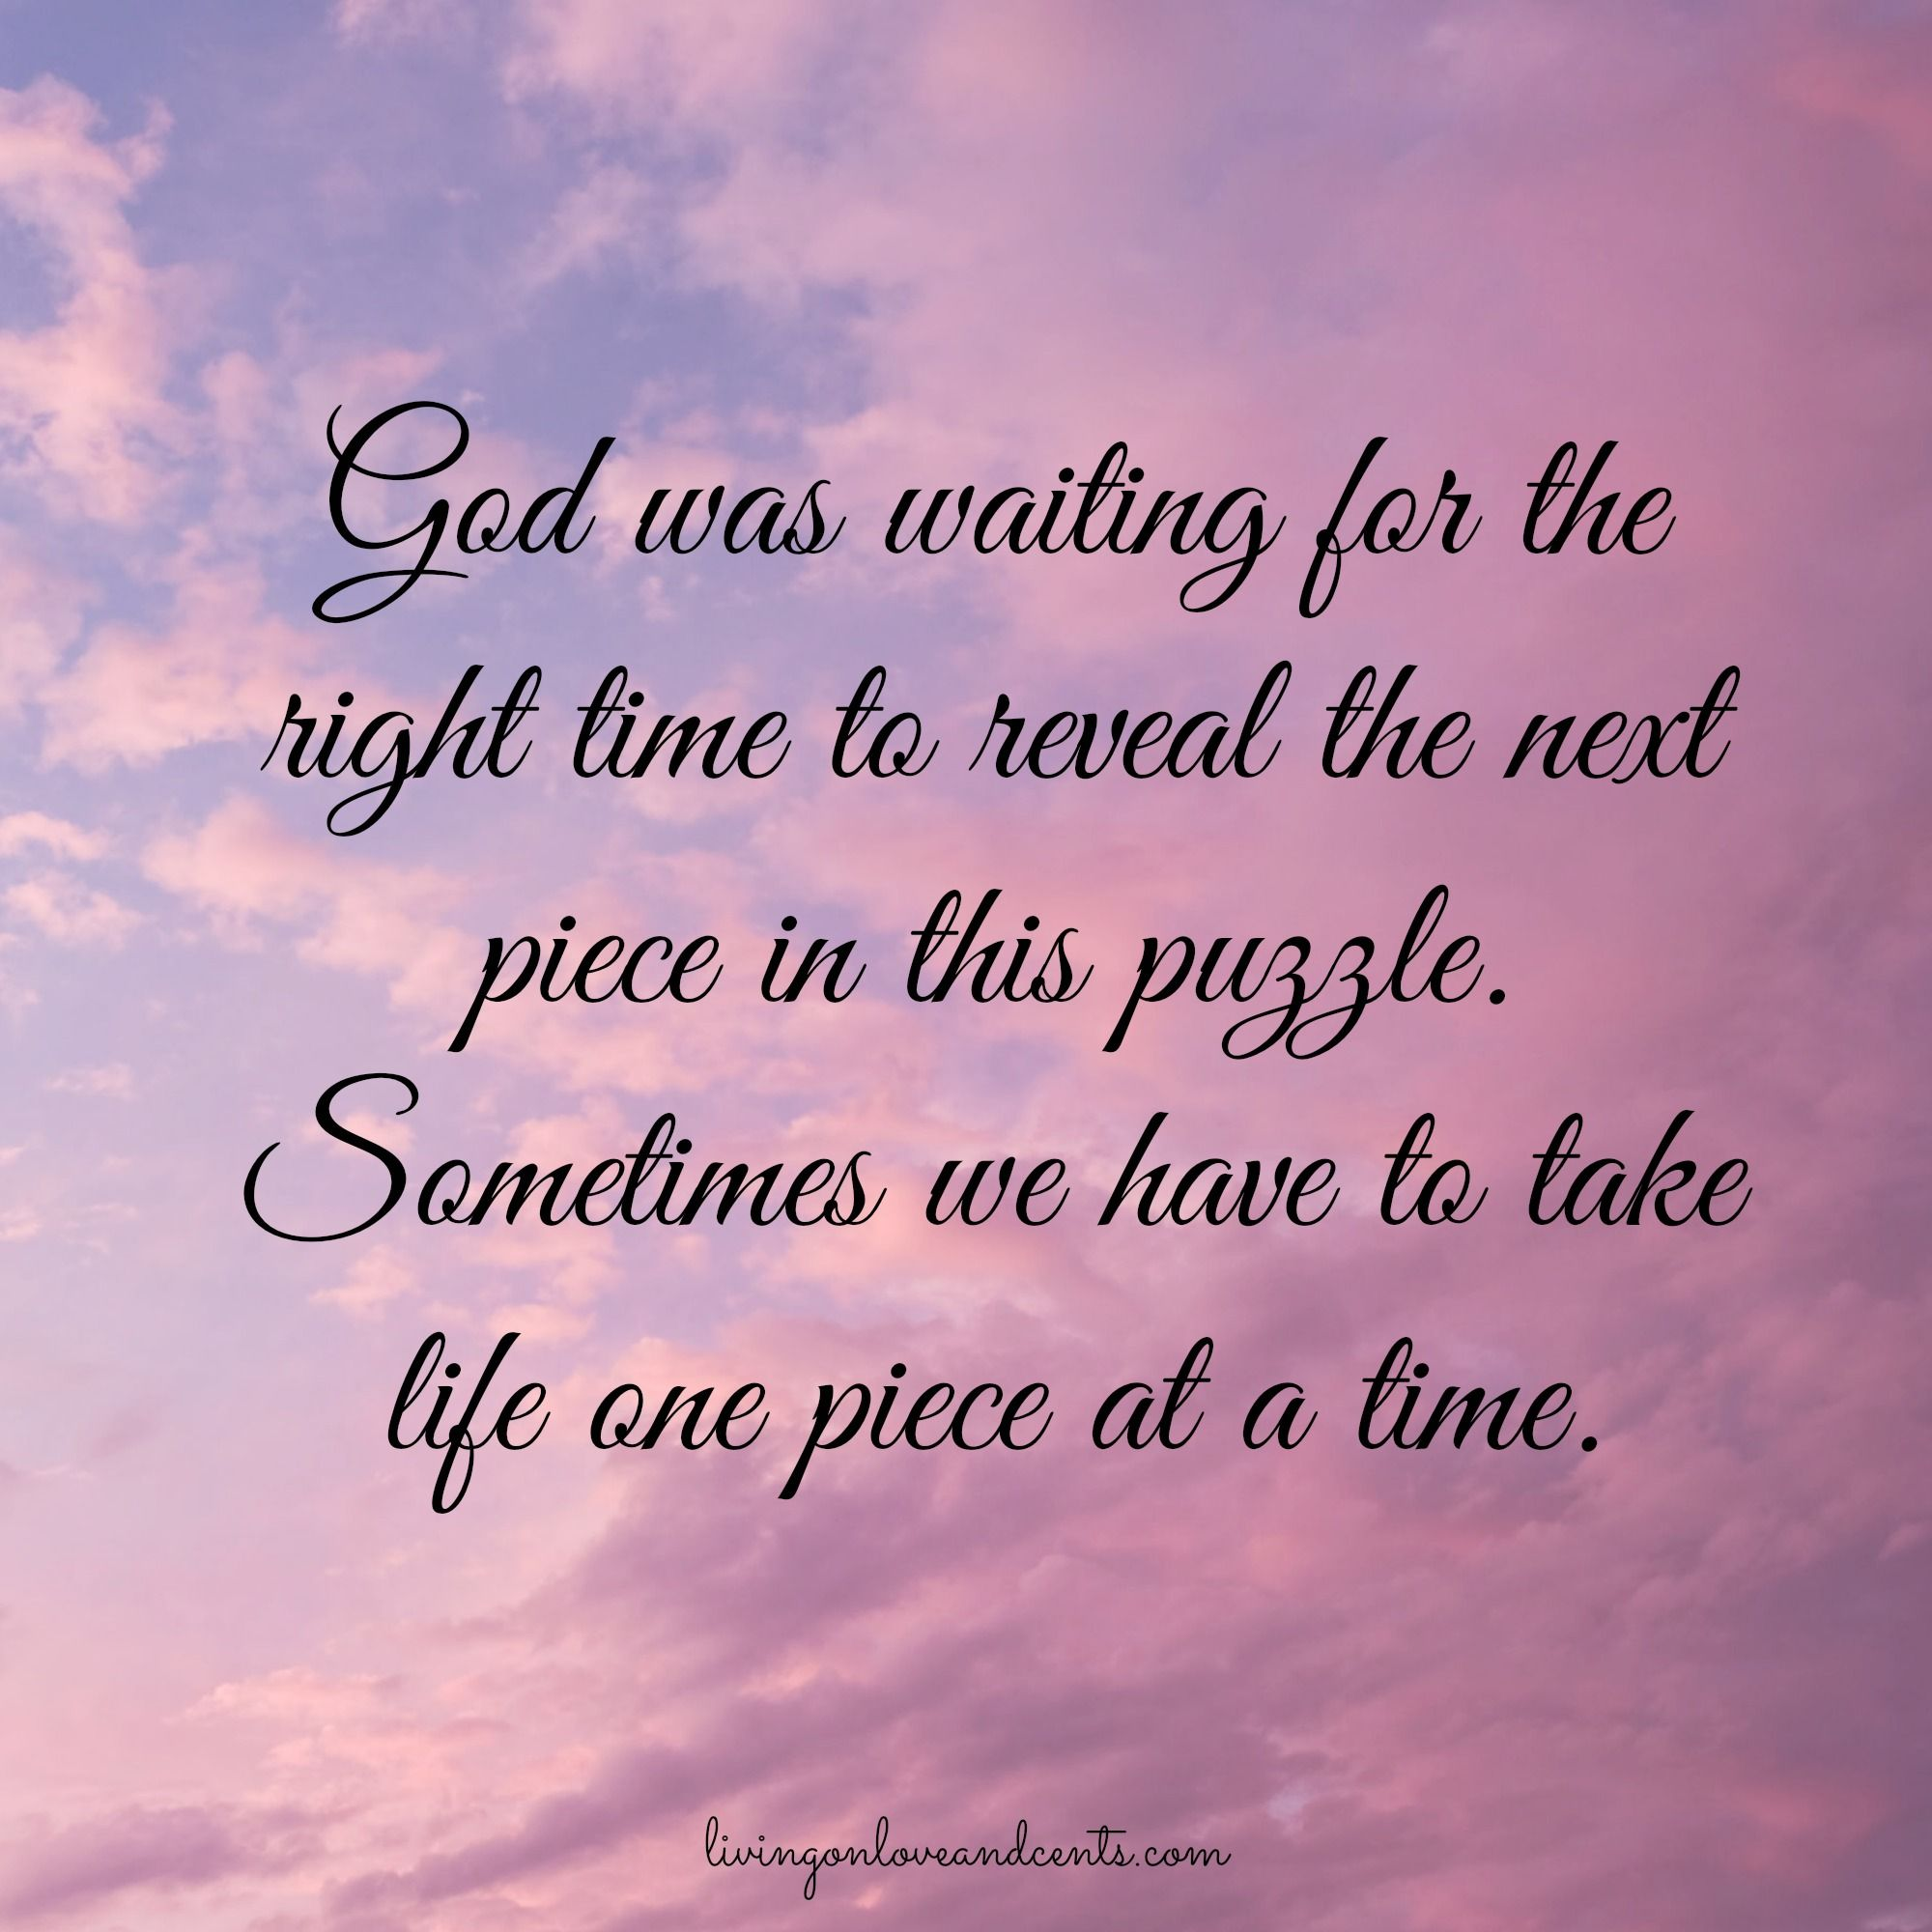 Small Town Life Quotes When God Moves  Christian Living  Pinterest  Inspirational